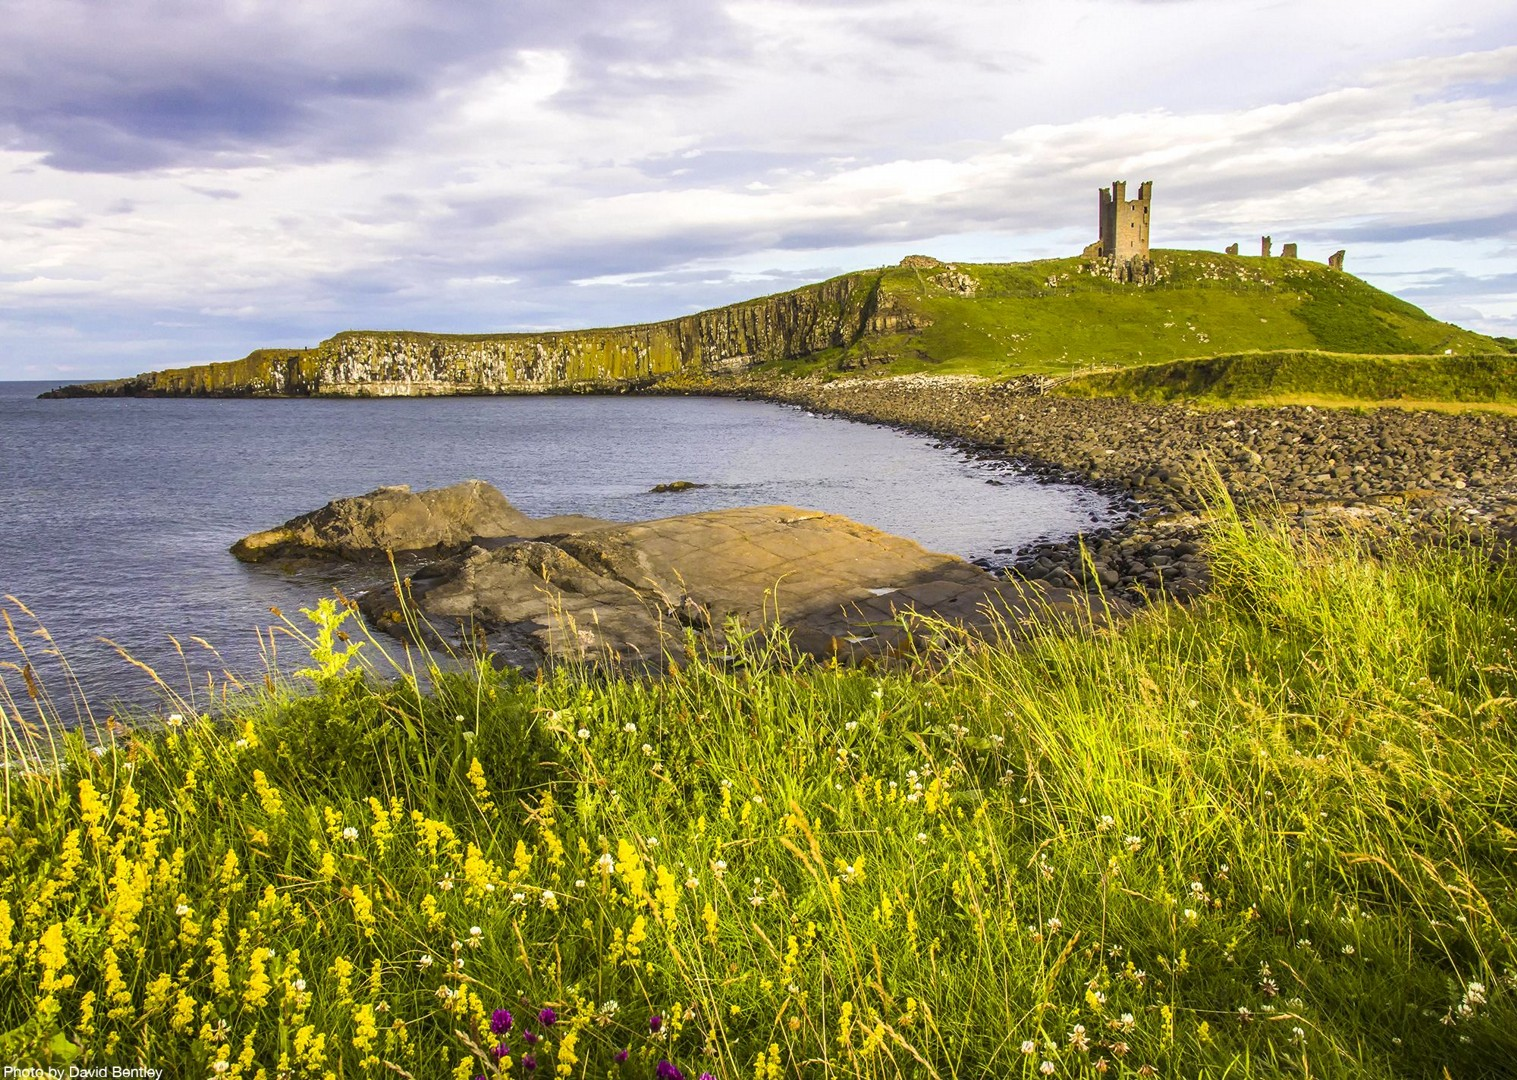 castles-self-guided-2-day-northumberland-coast-holiday-cycling-tour.jpg - UK - Northumberland Coast - 2 Days - Self-Guided Leisure Cycling Holiday - Leisure Cycling